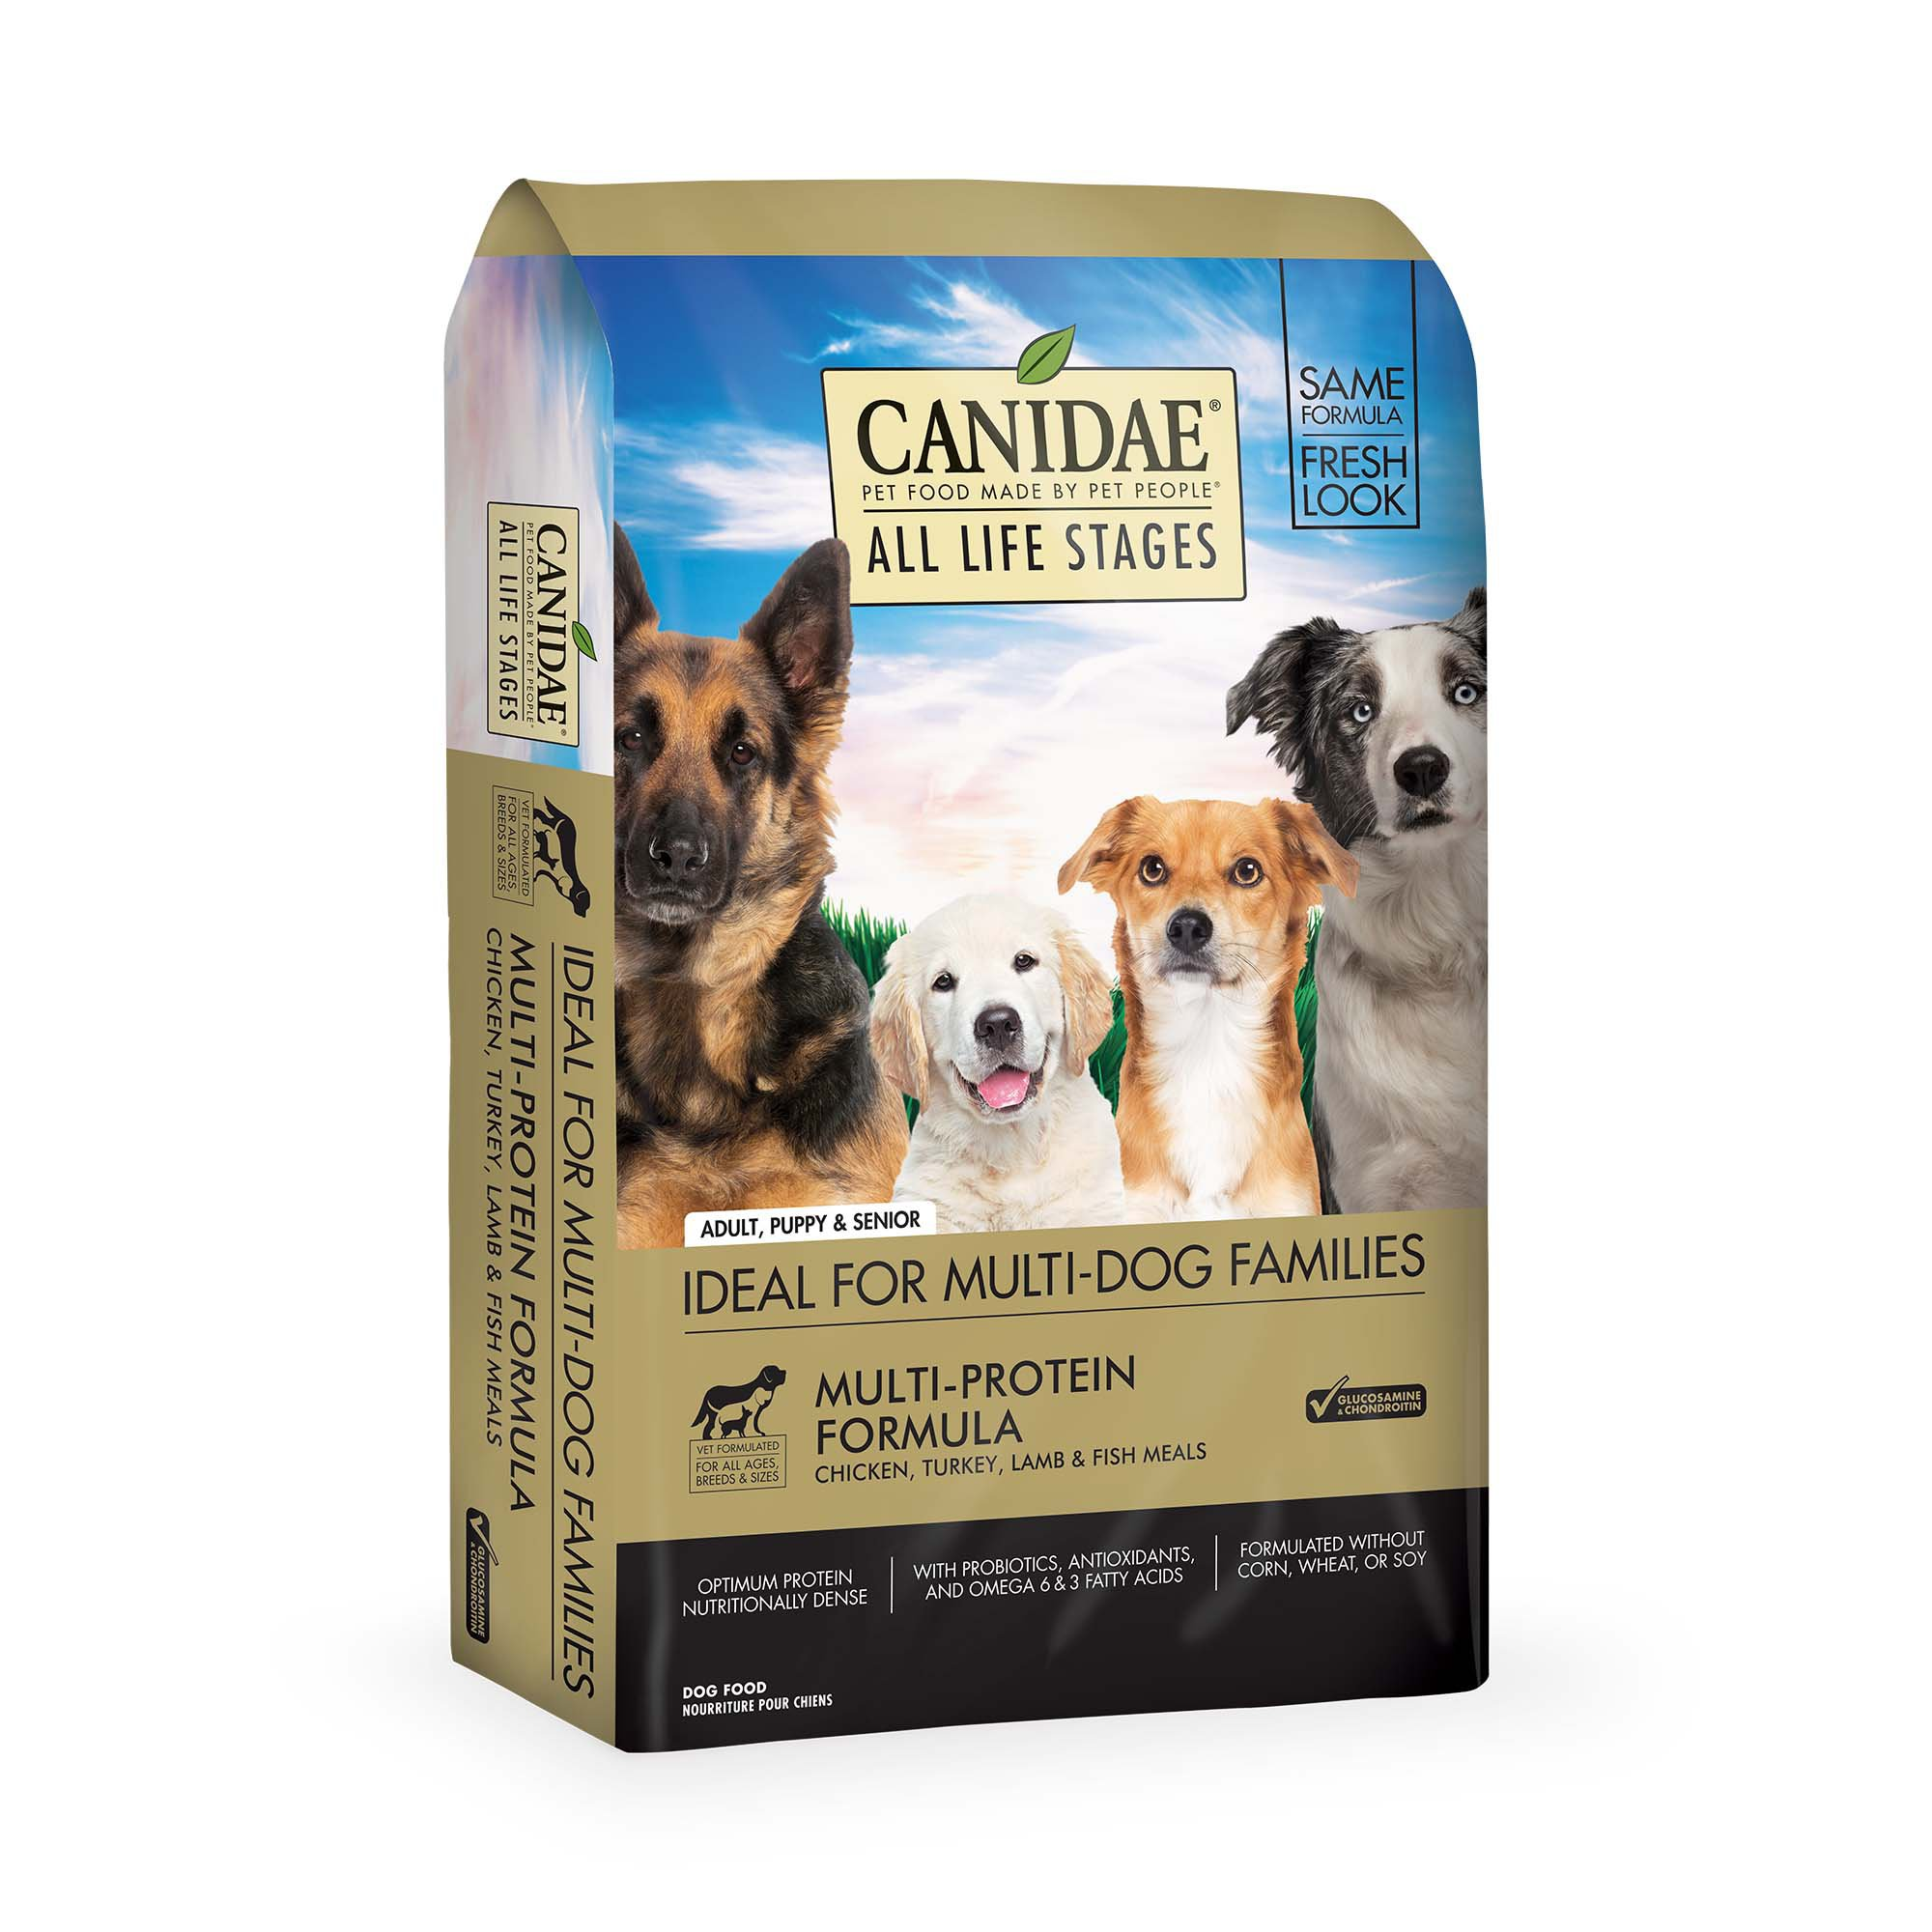 Cultivating New Ways To Do Pet Food Better. At CANIDAE ®, innovation is what our brand is built on. Thinking of new ways to do better for pets and their people .